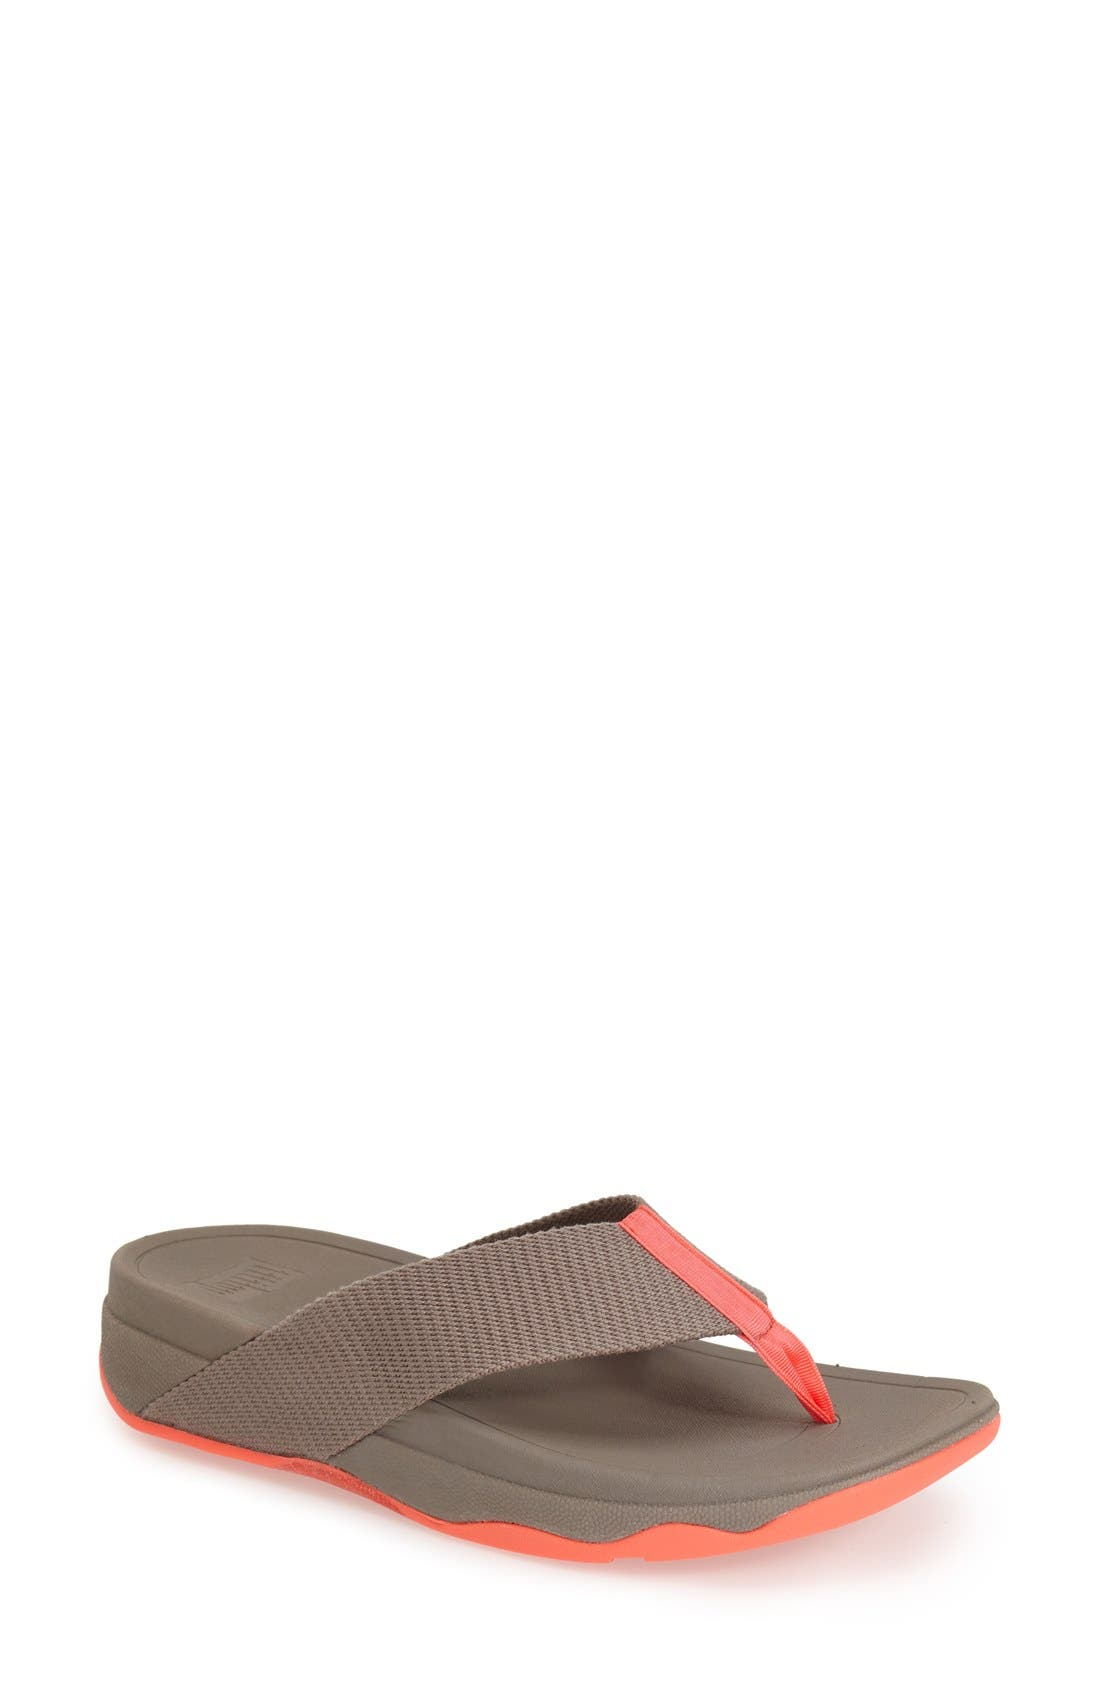 'Surfa' Thong Sandal,                             Main thumbnail 3, color,